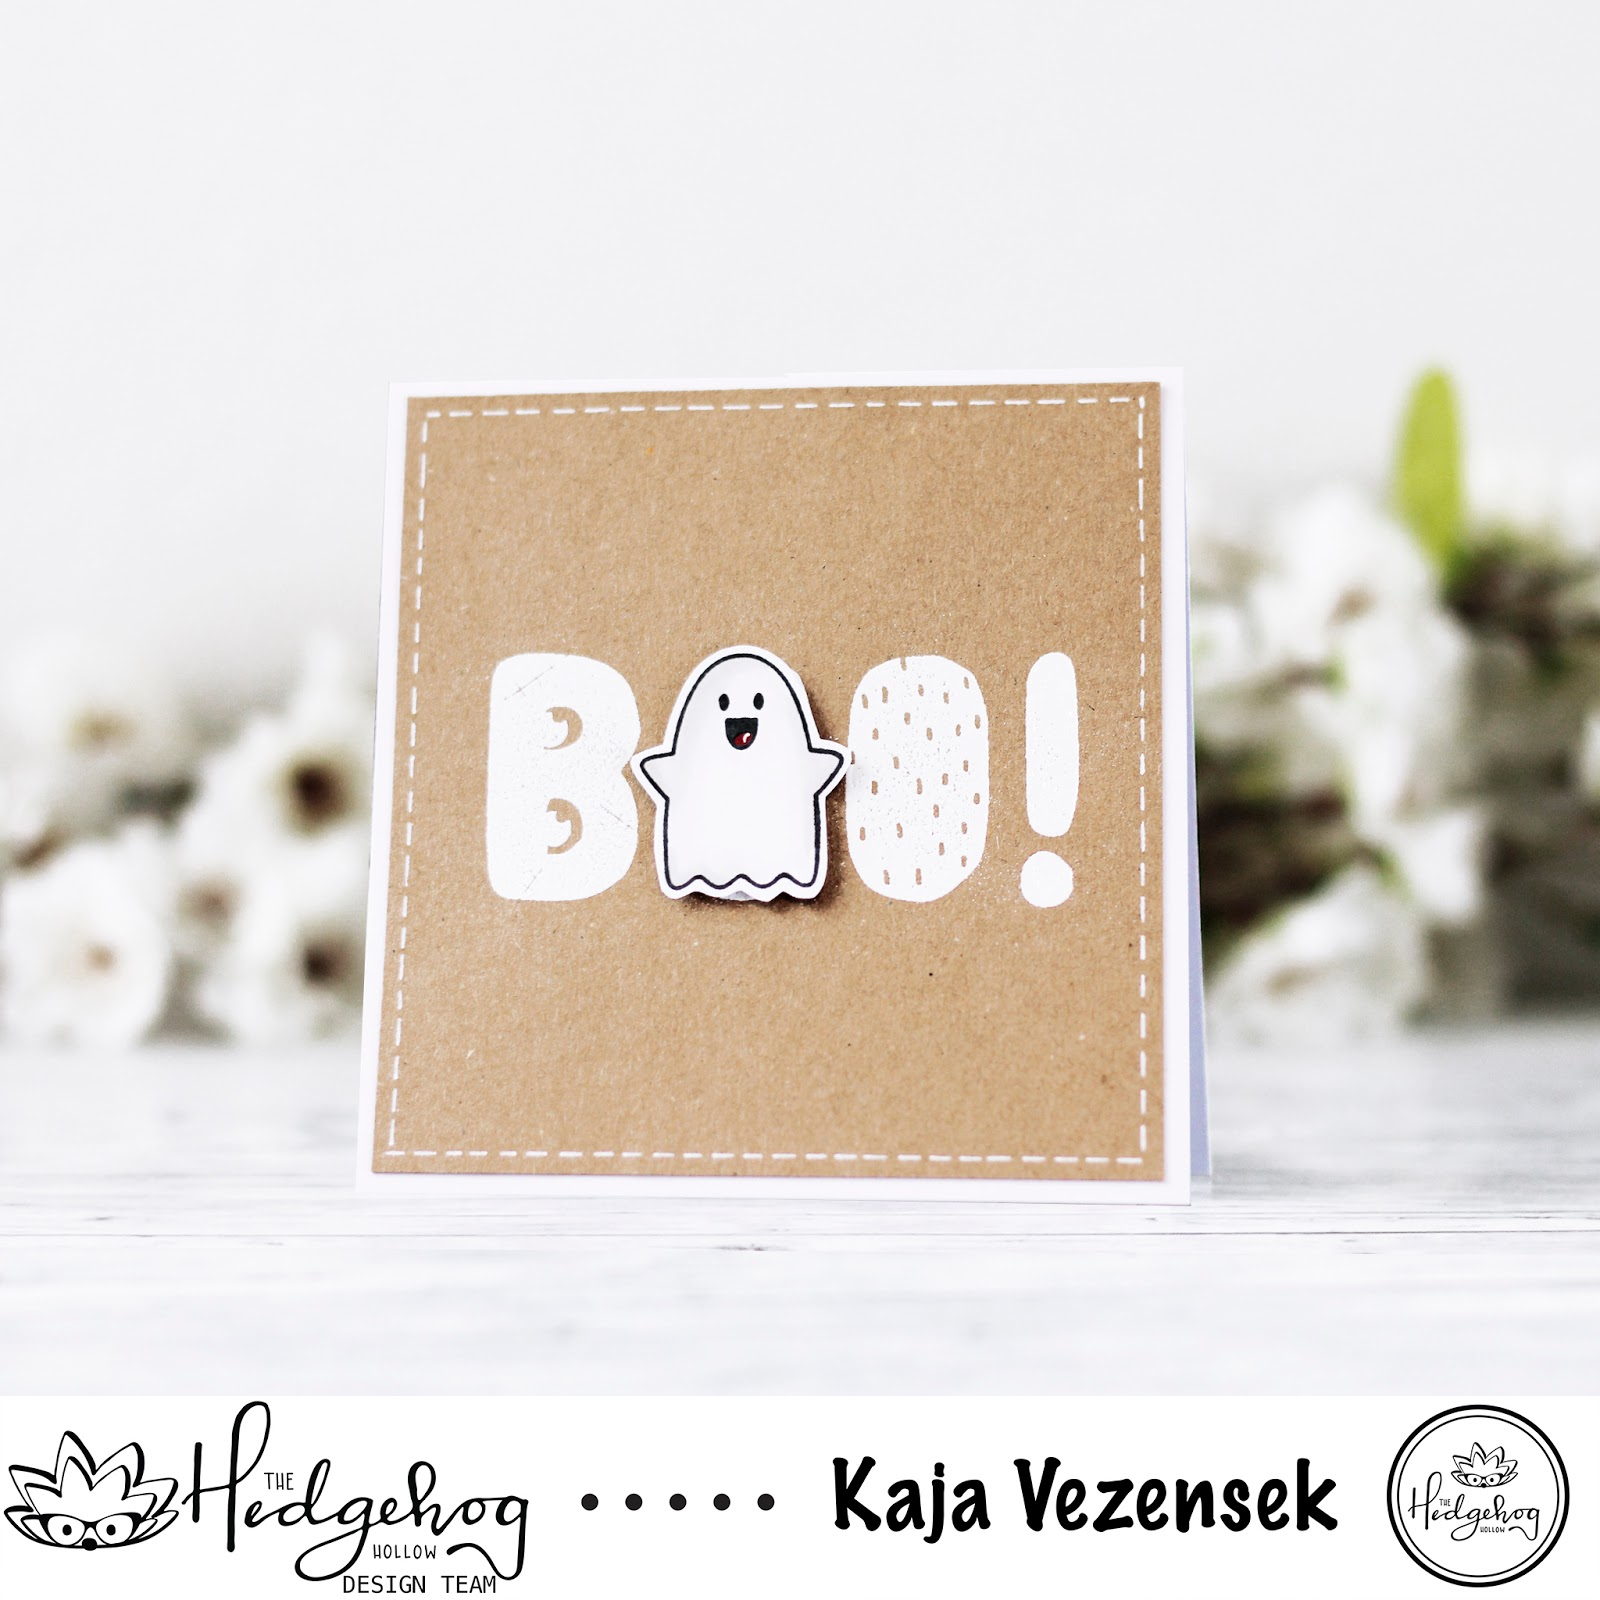 Boo! | Hedgehog hollow